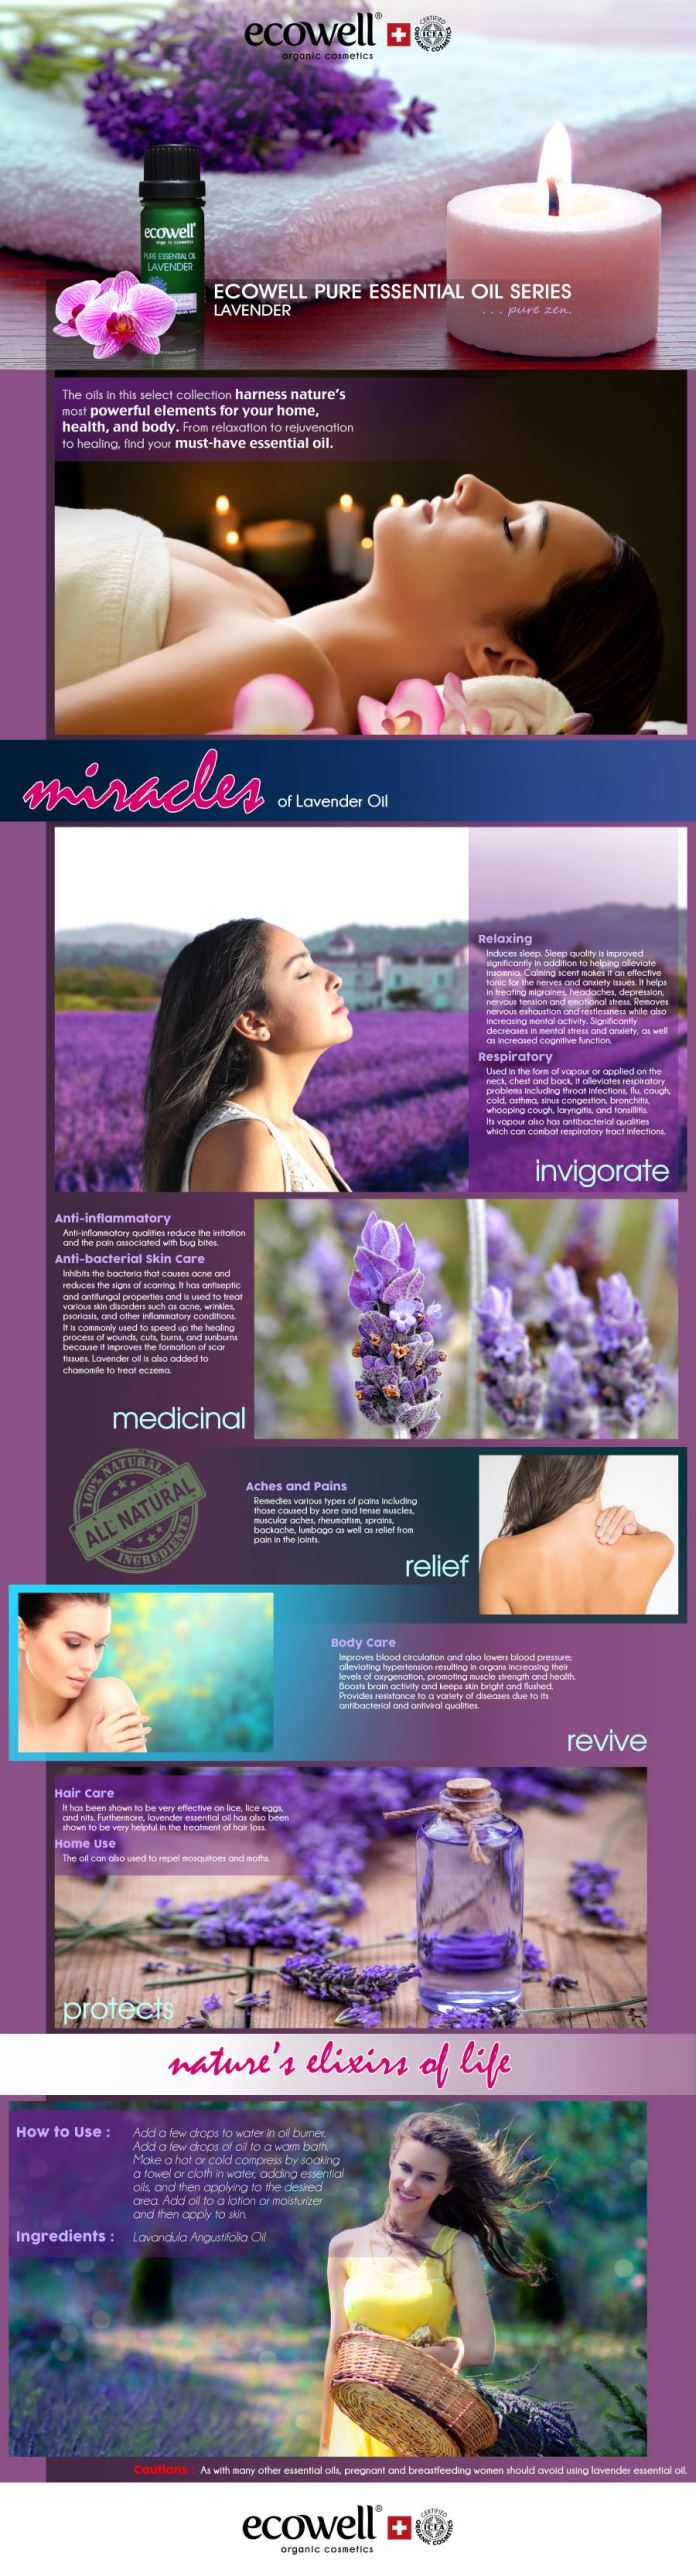 Ecowell Lavender Pure Essential Oil